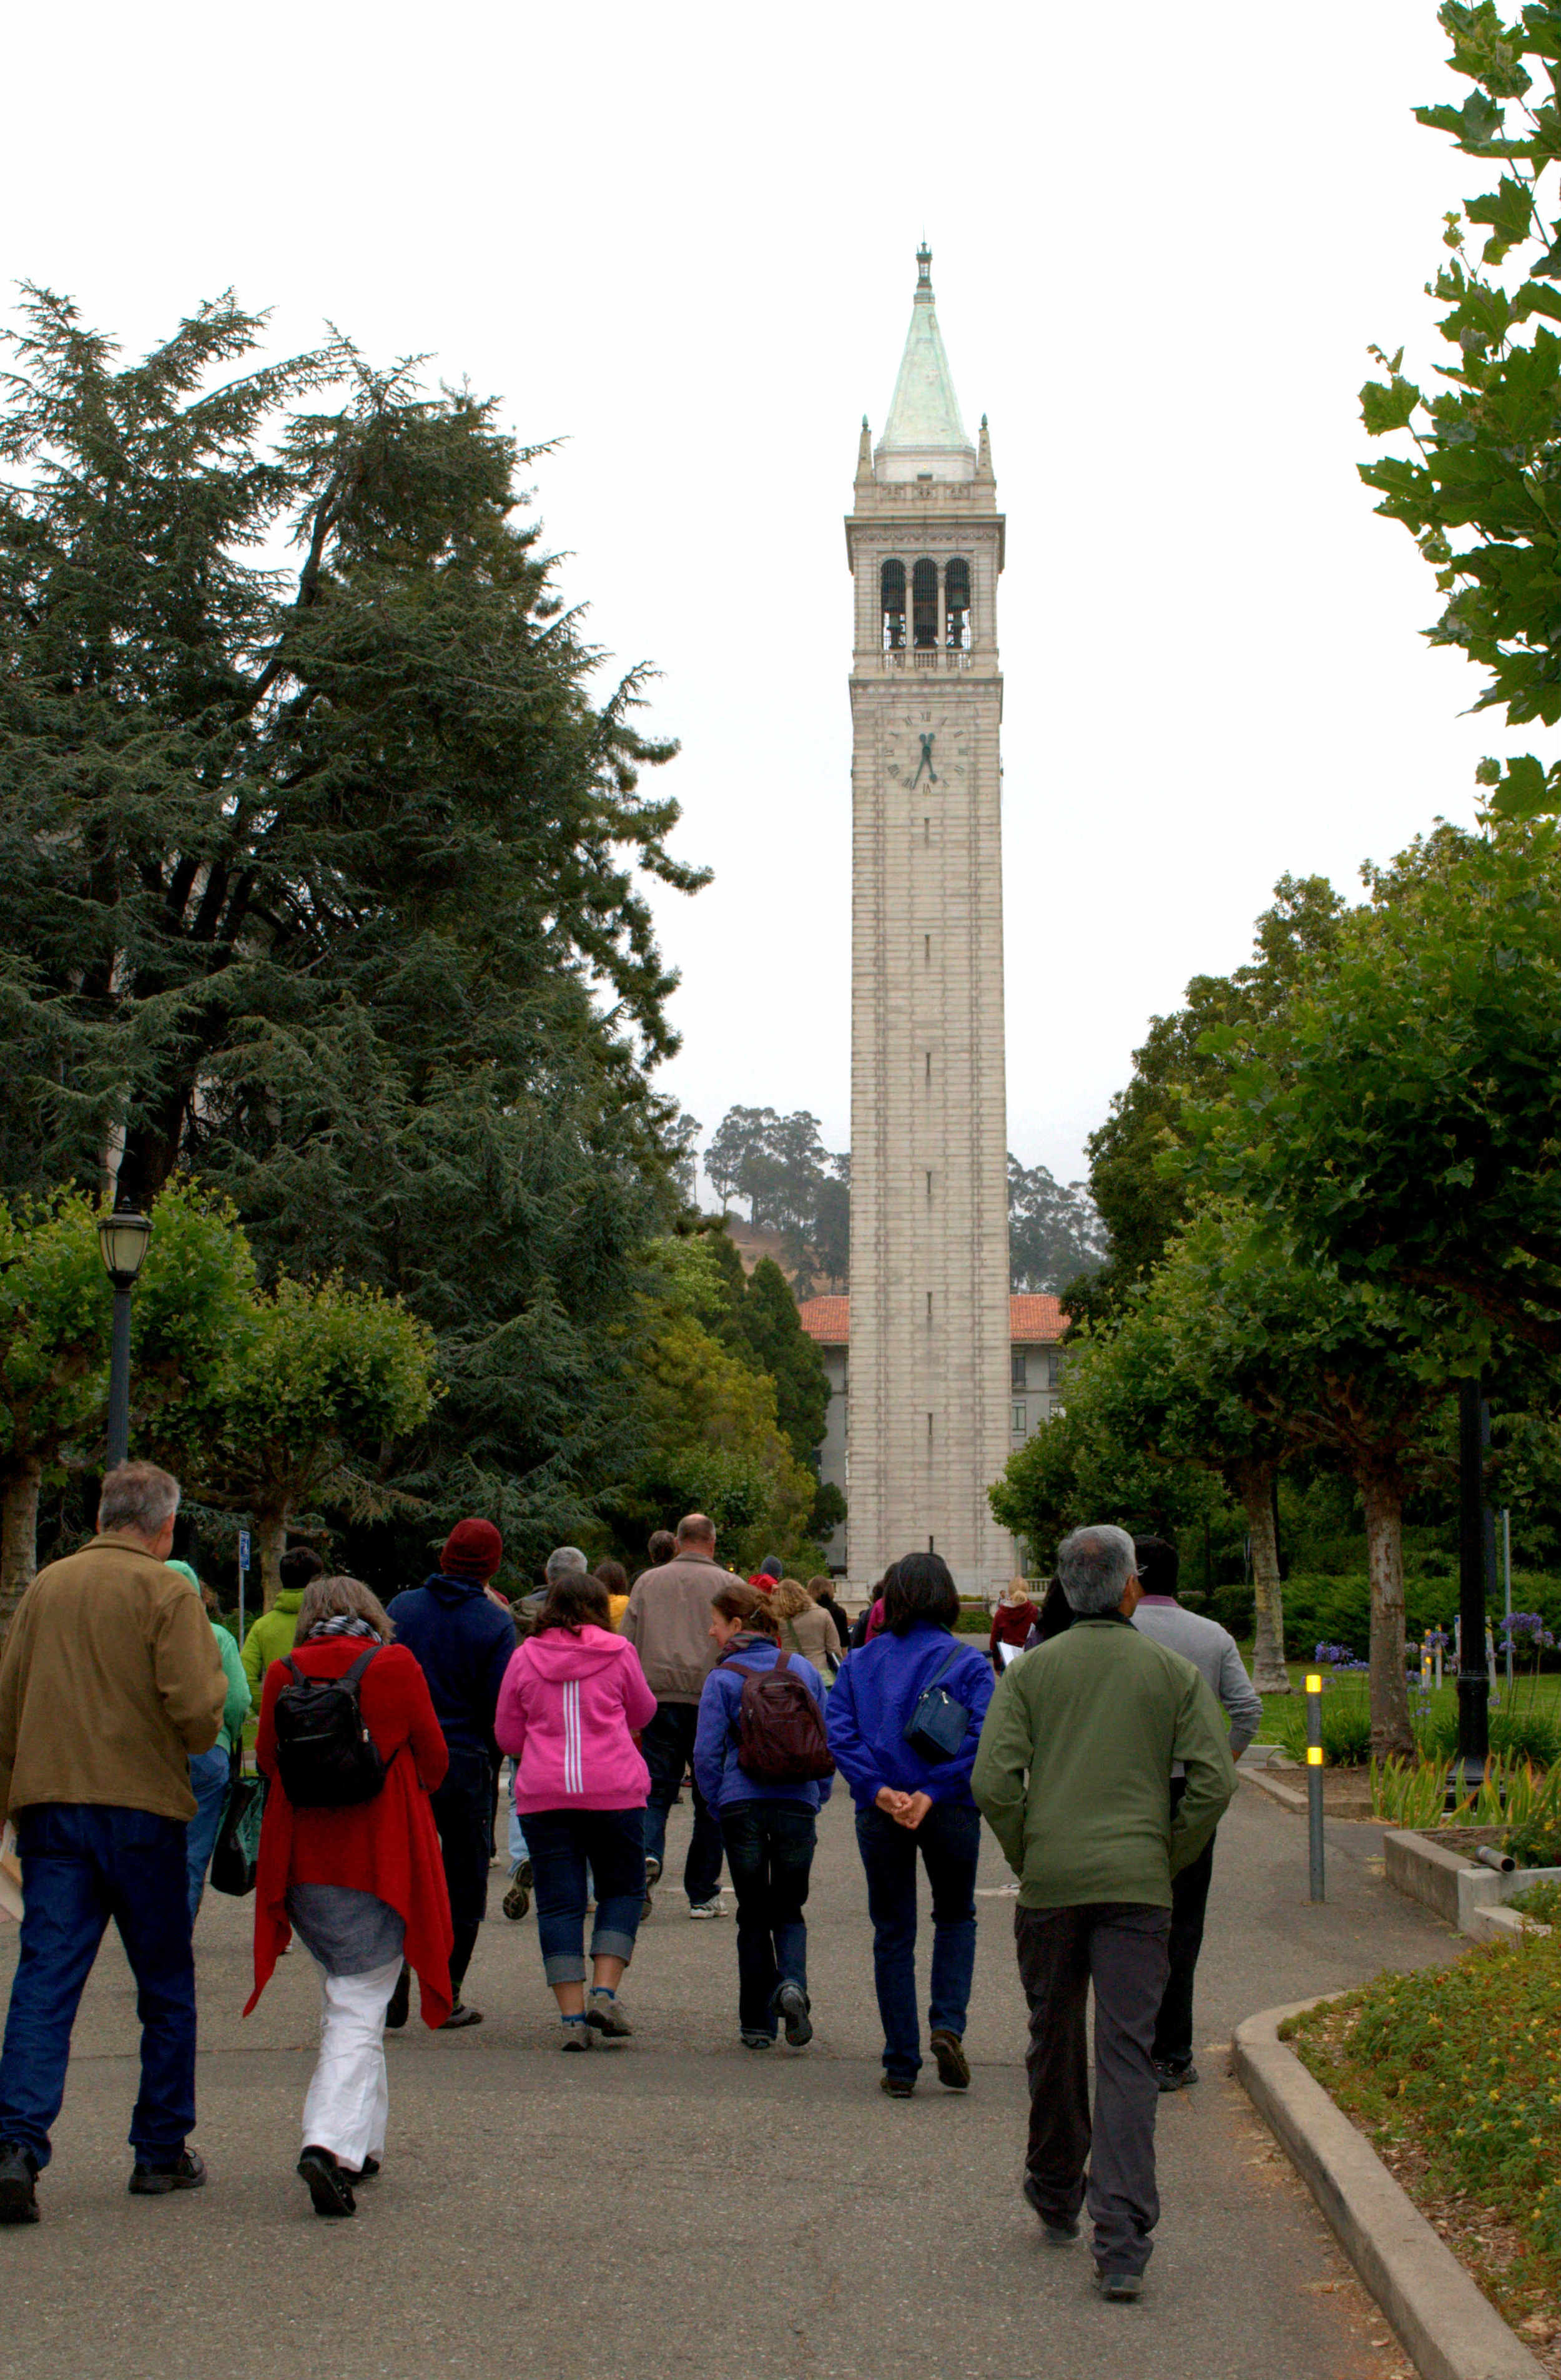 The UC Berkeley campus, where Fleur first discovered Easwaran and passage mediation.